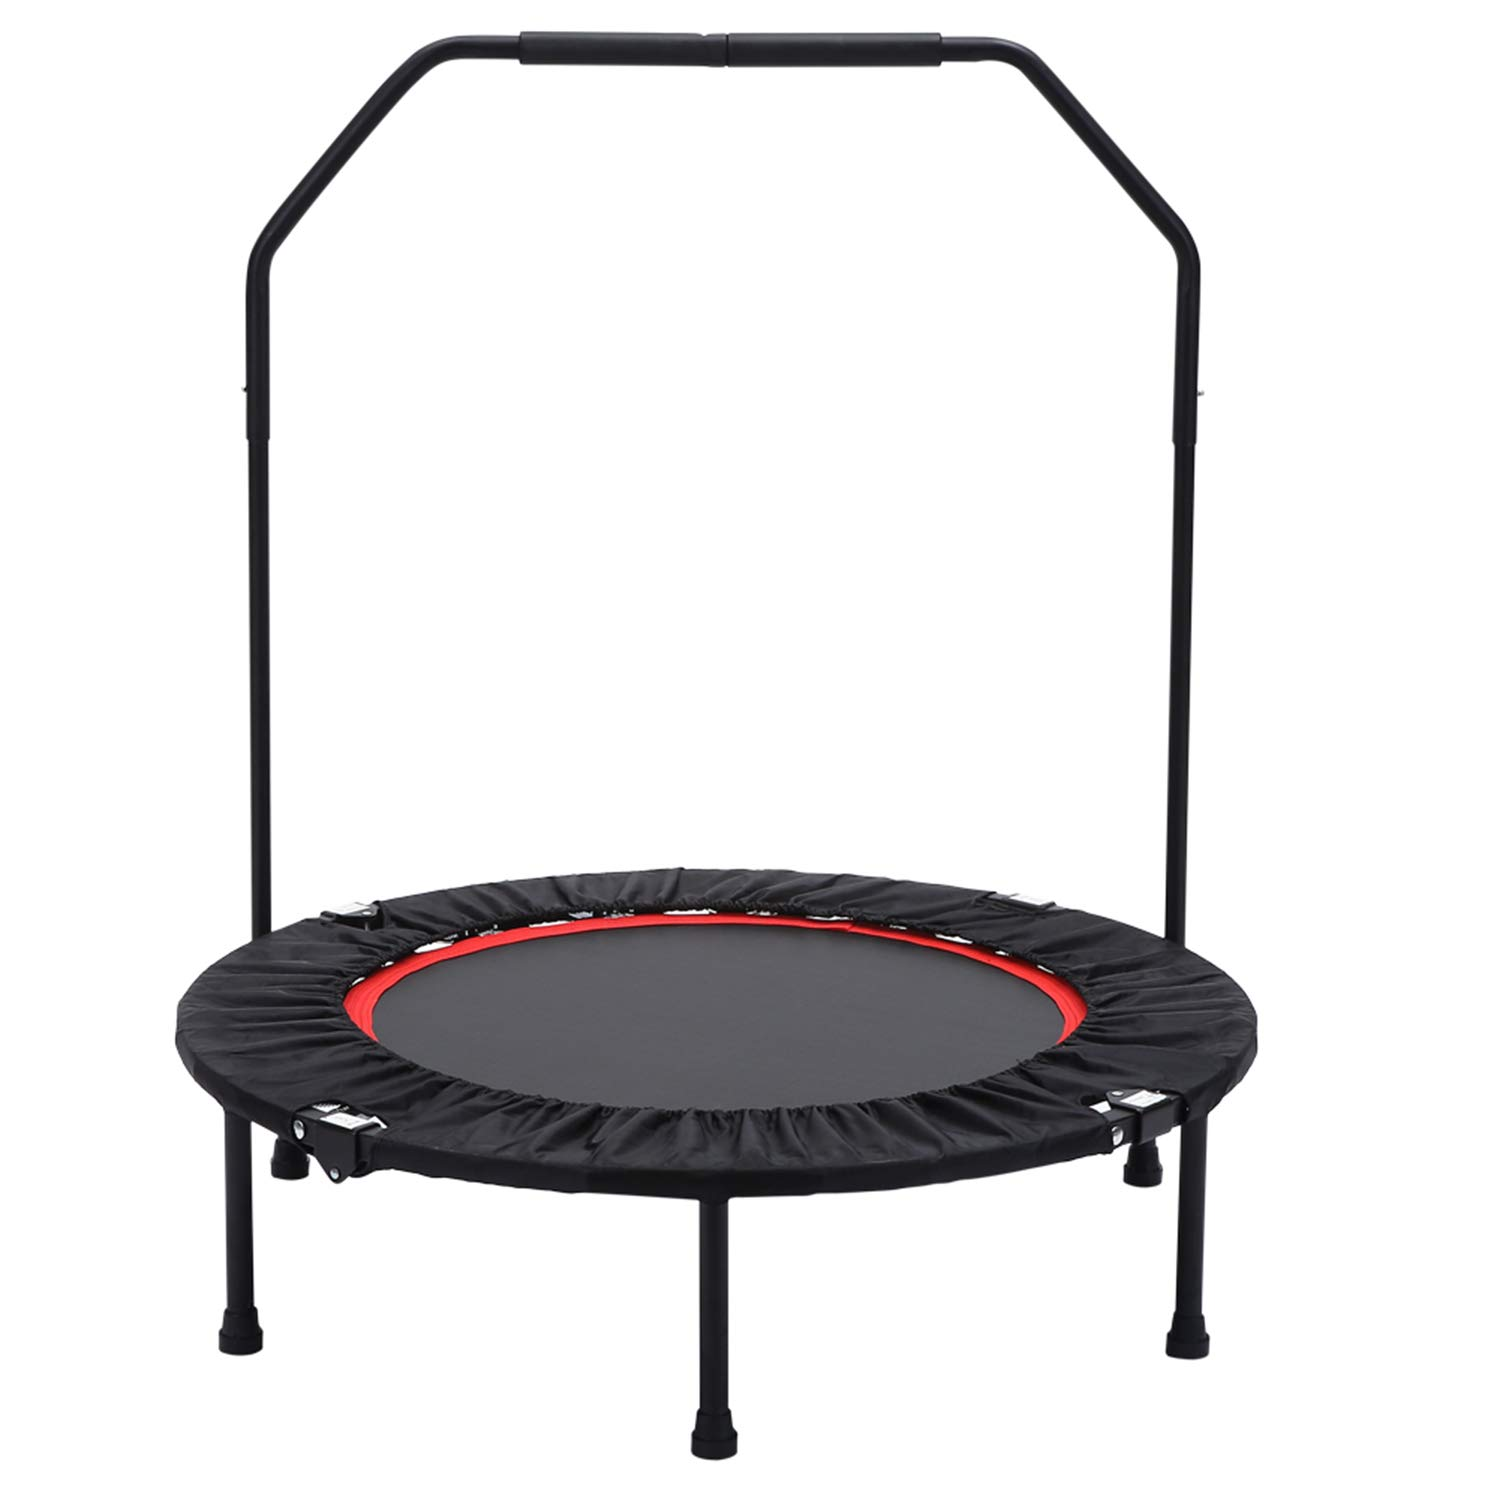 Seatopia Portable 40 Fitness Trampoline with Adjustable Handrail,Foldable Rebounder, Silent Aerobic Exercise Trainer for Adults and Kids,Max Load 300lbs